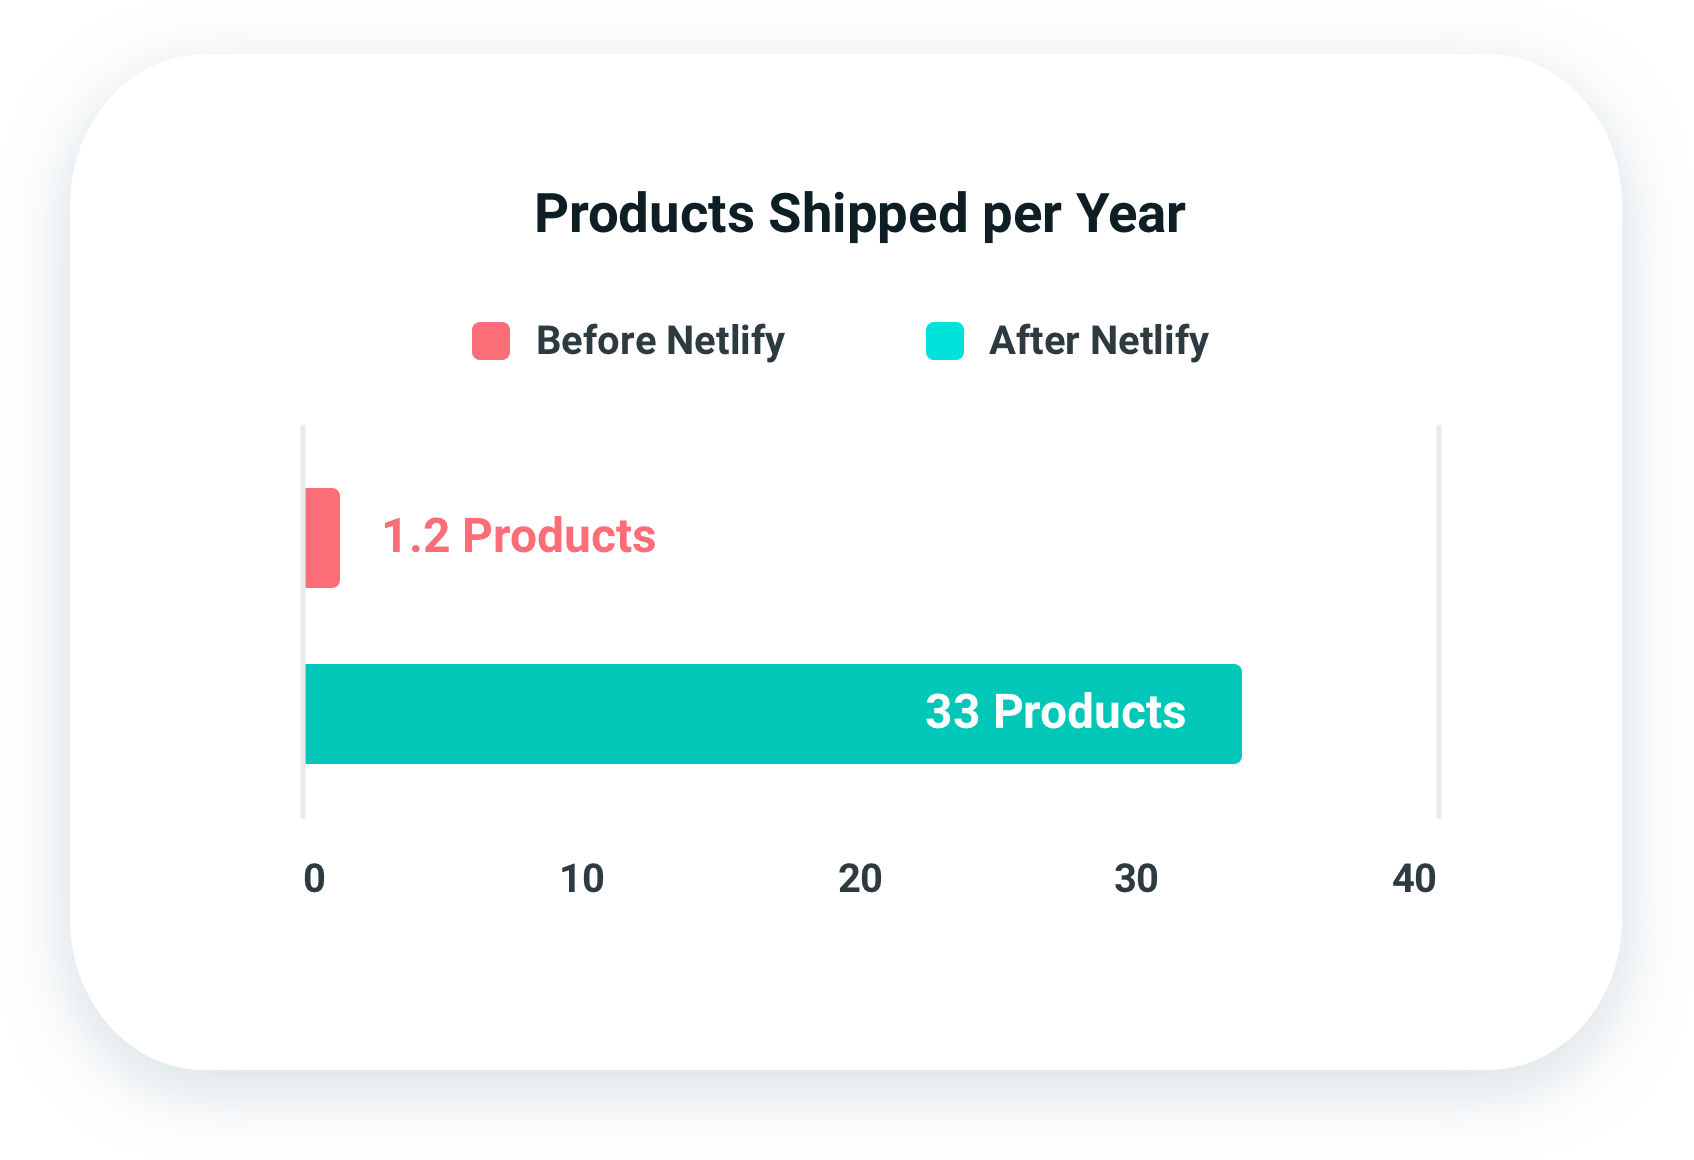 Horizontal bar chart displaying the products shipped per year before and after Netlify